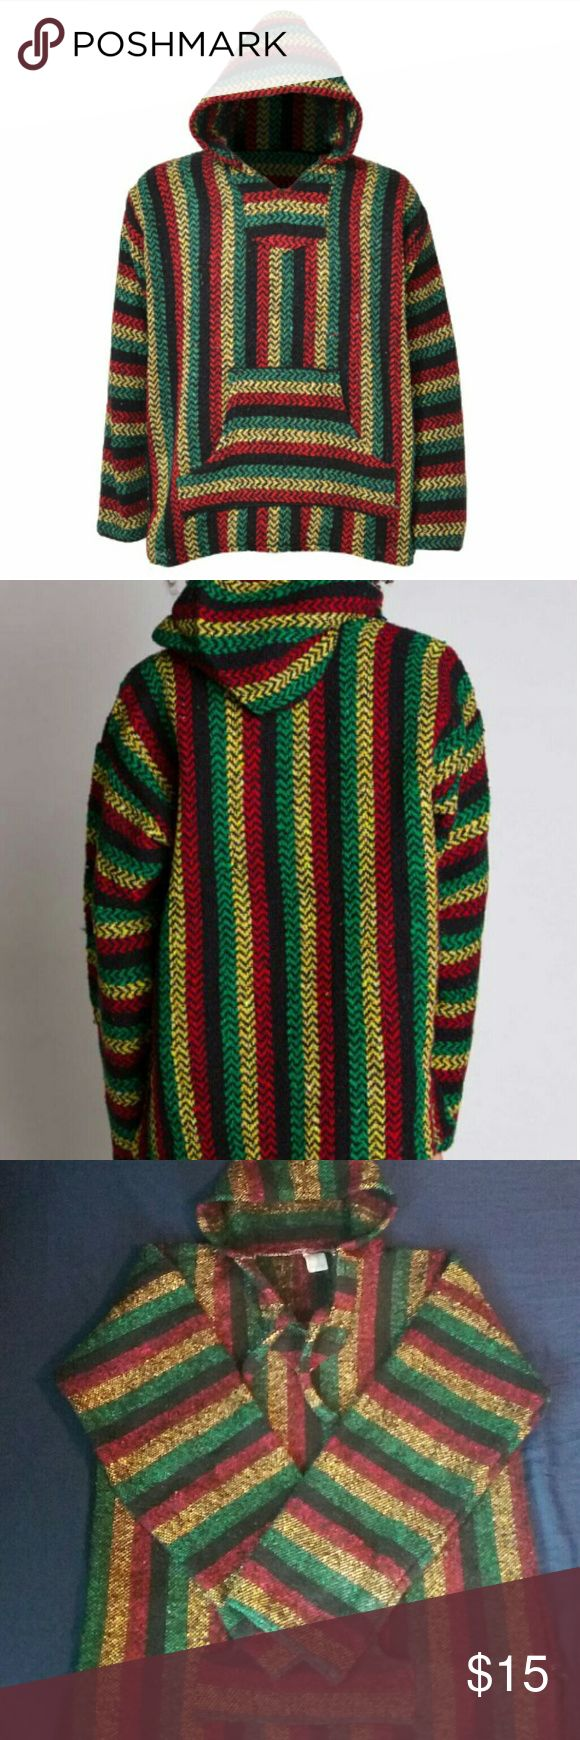 Rasta colored Baja hoodie This super soft and huge baja hoodie can be for both men and women. It's very comfy and good for bonfires and camping.   It's very soft on the inside and will keep you warm. There's pilling from being washed but its clean and it has no stains or holes. It's very long.  I bought it at a gift shop in San Diego but it's just not for me, so hopefully it will go to someone who will love to wear this. Shirts Sweatshirts & Hoodies